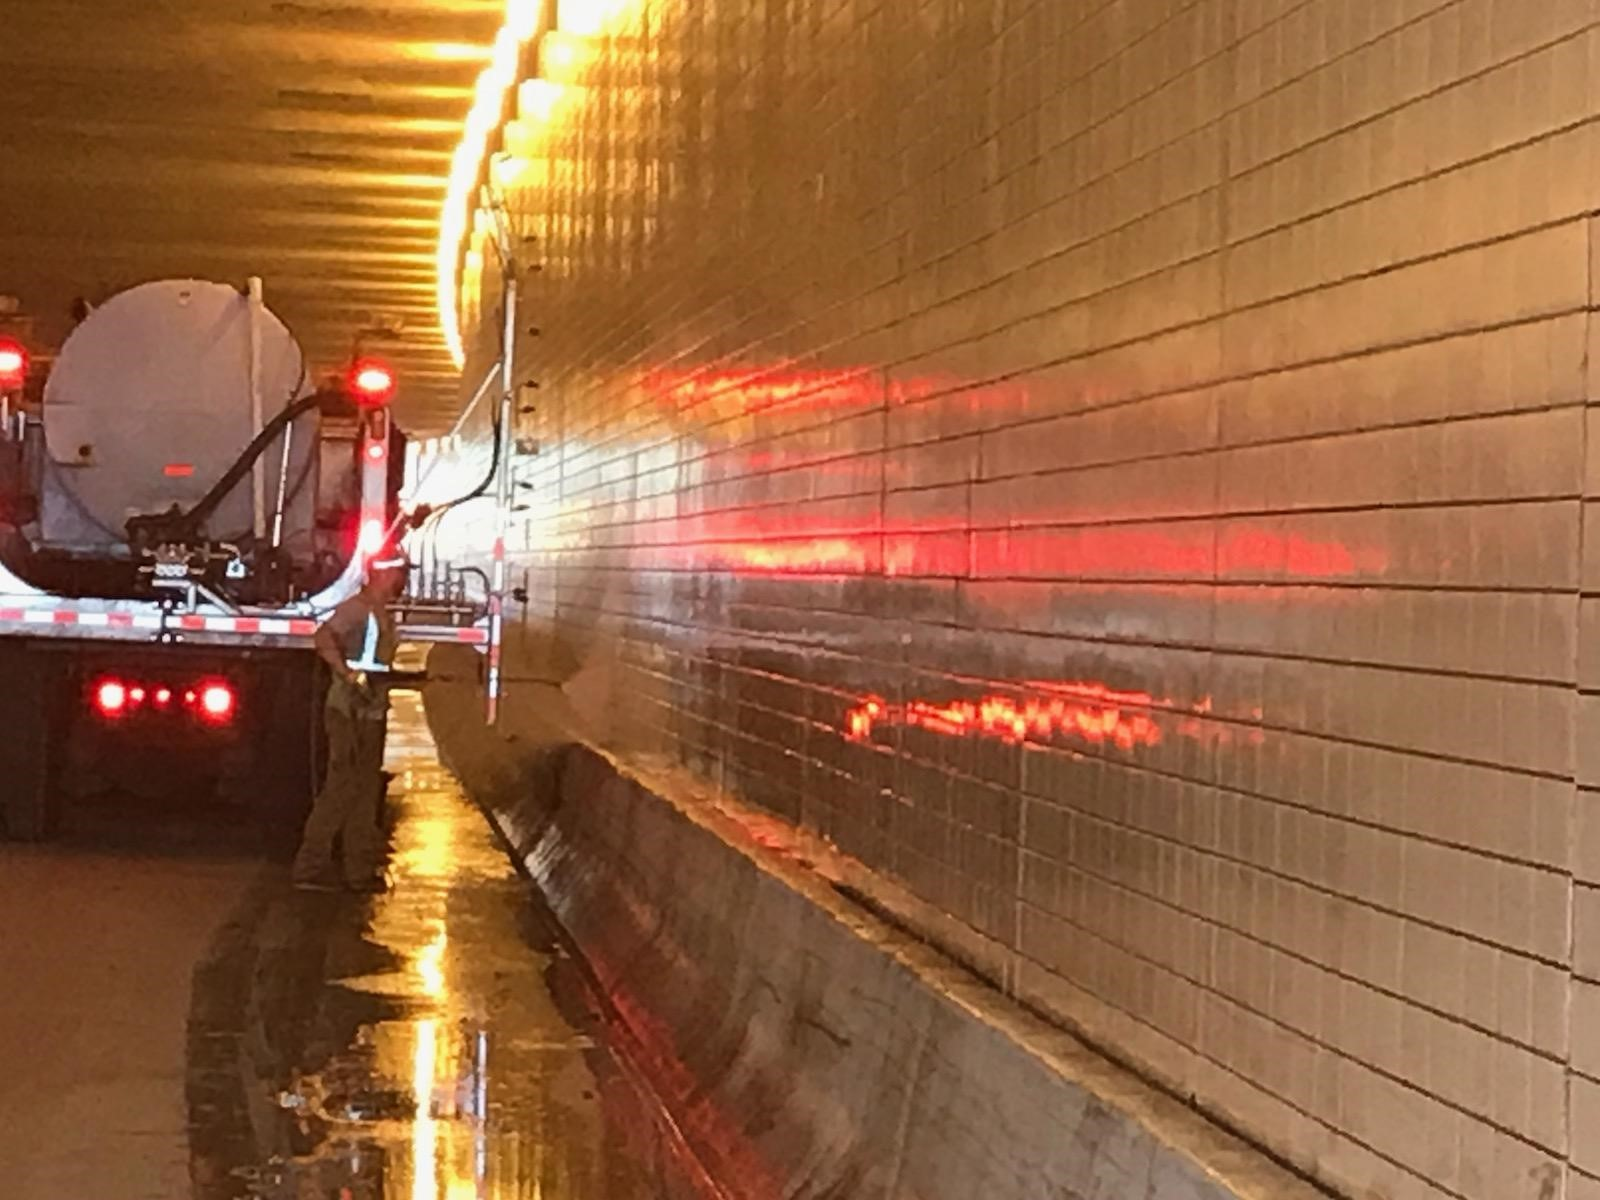 Photo: a truck in a tunnel spraying water at a tunnel wall